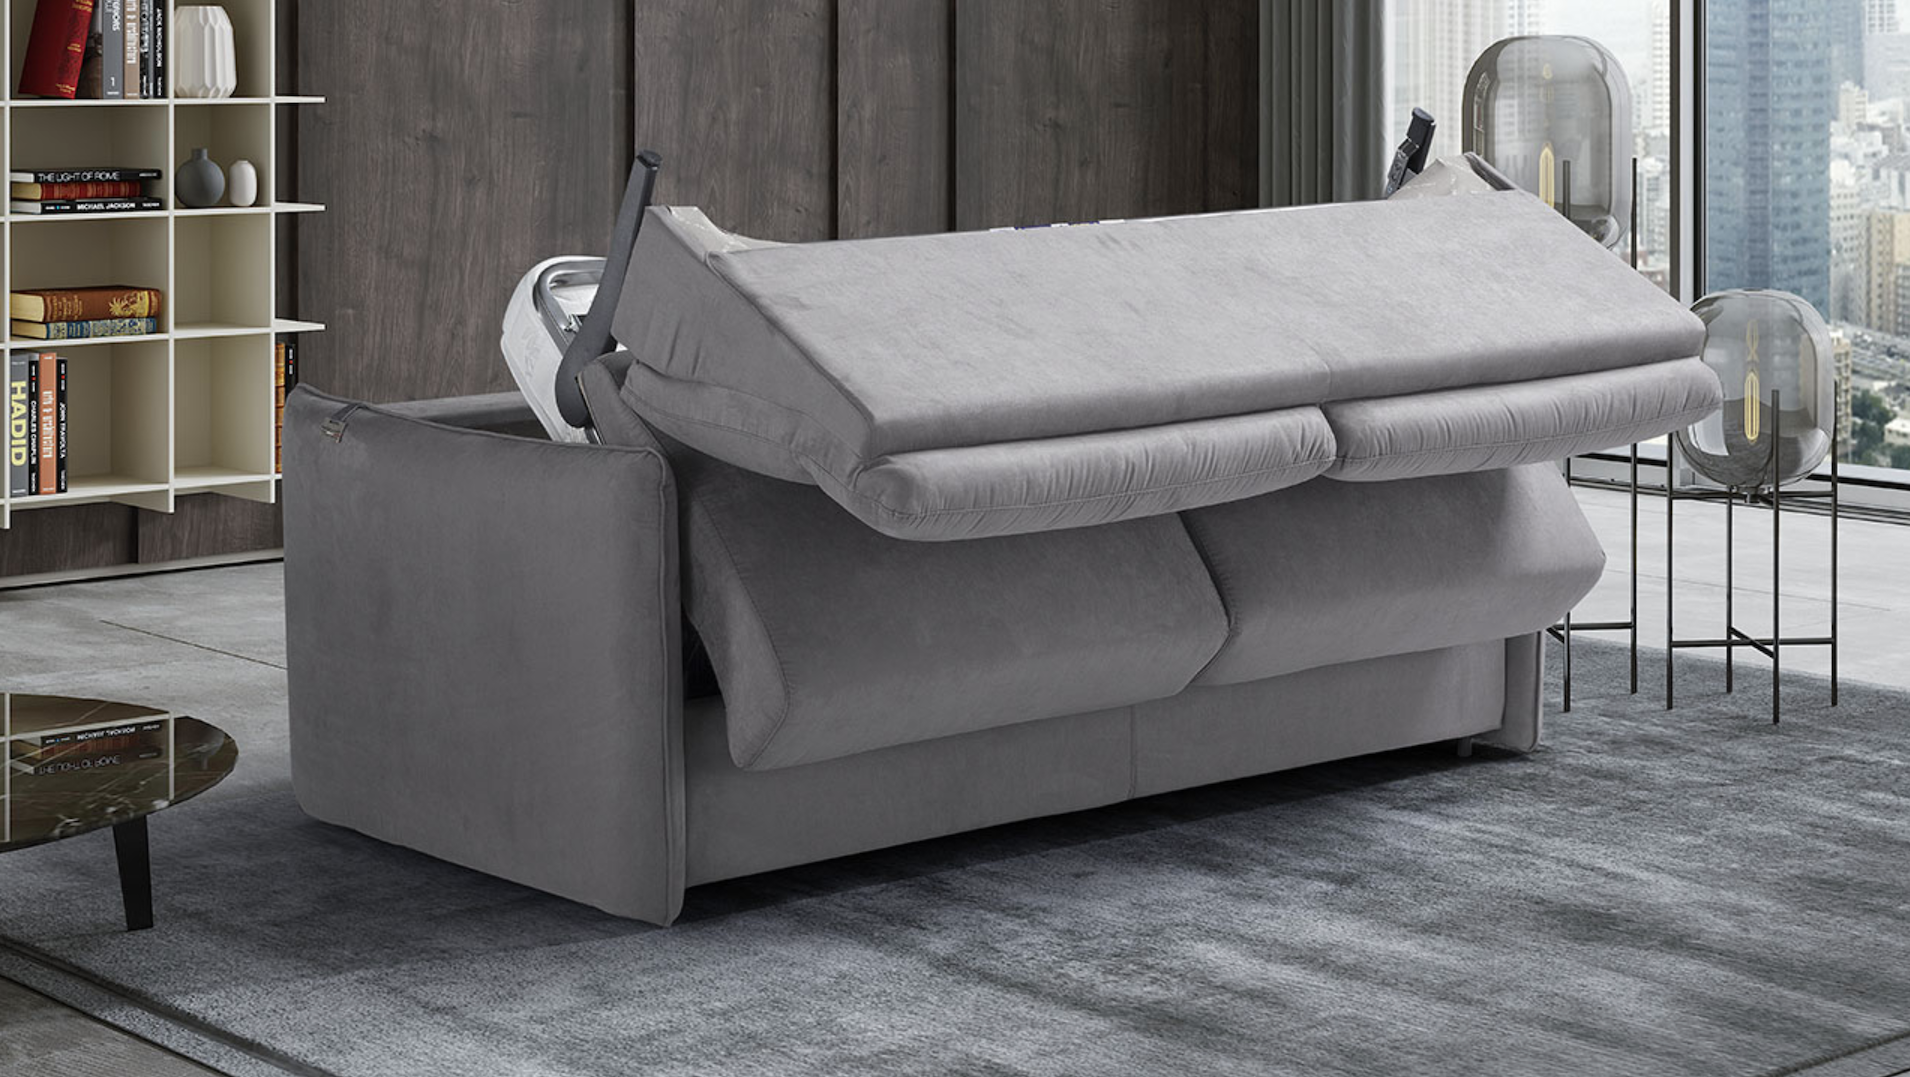 AIMEE Italian Crafted 3 Seat Sofa Bed in PLAZA SILVER RRP £1979 - Image 5 of 5